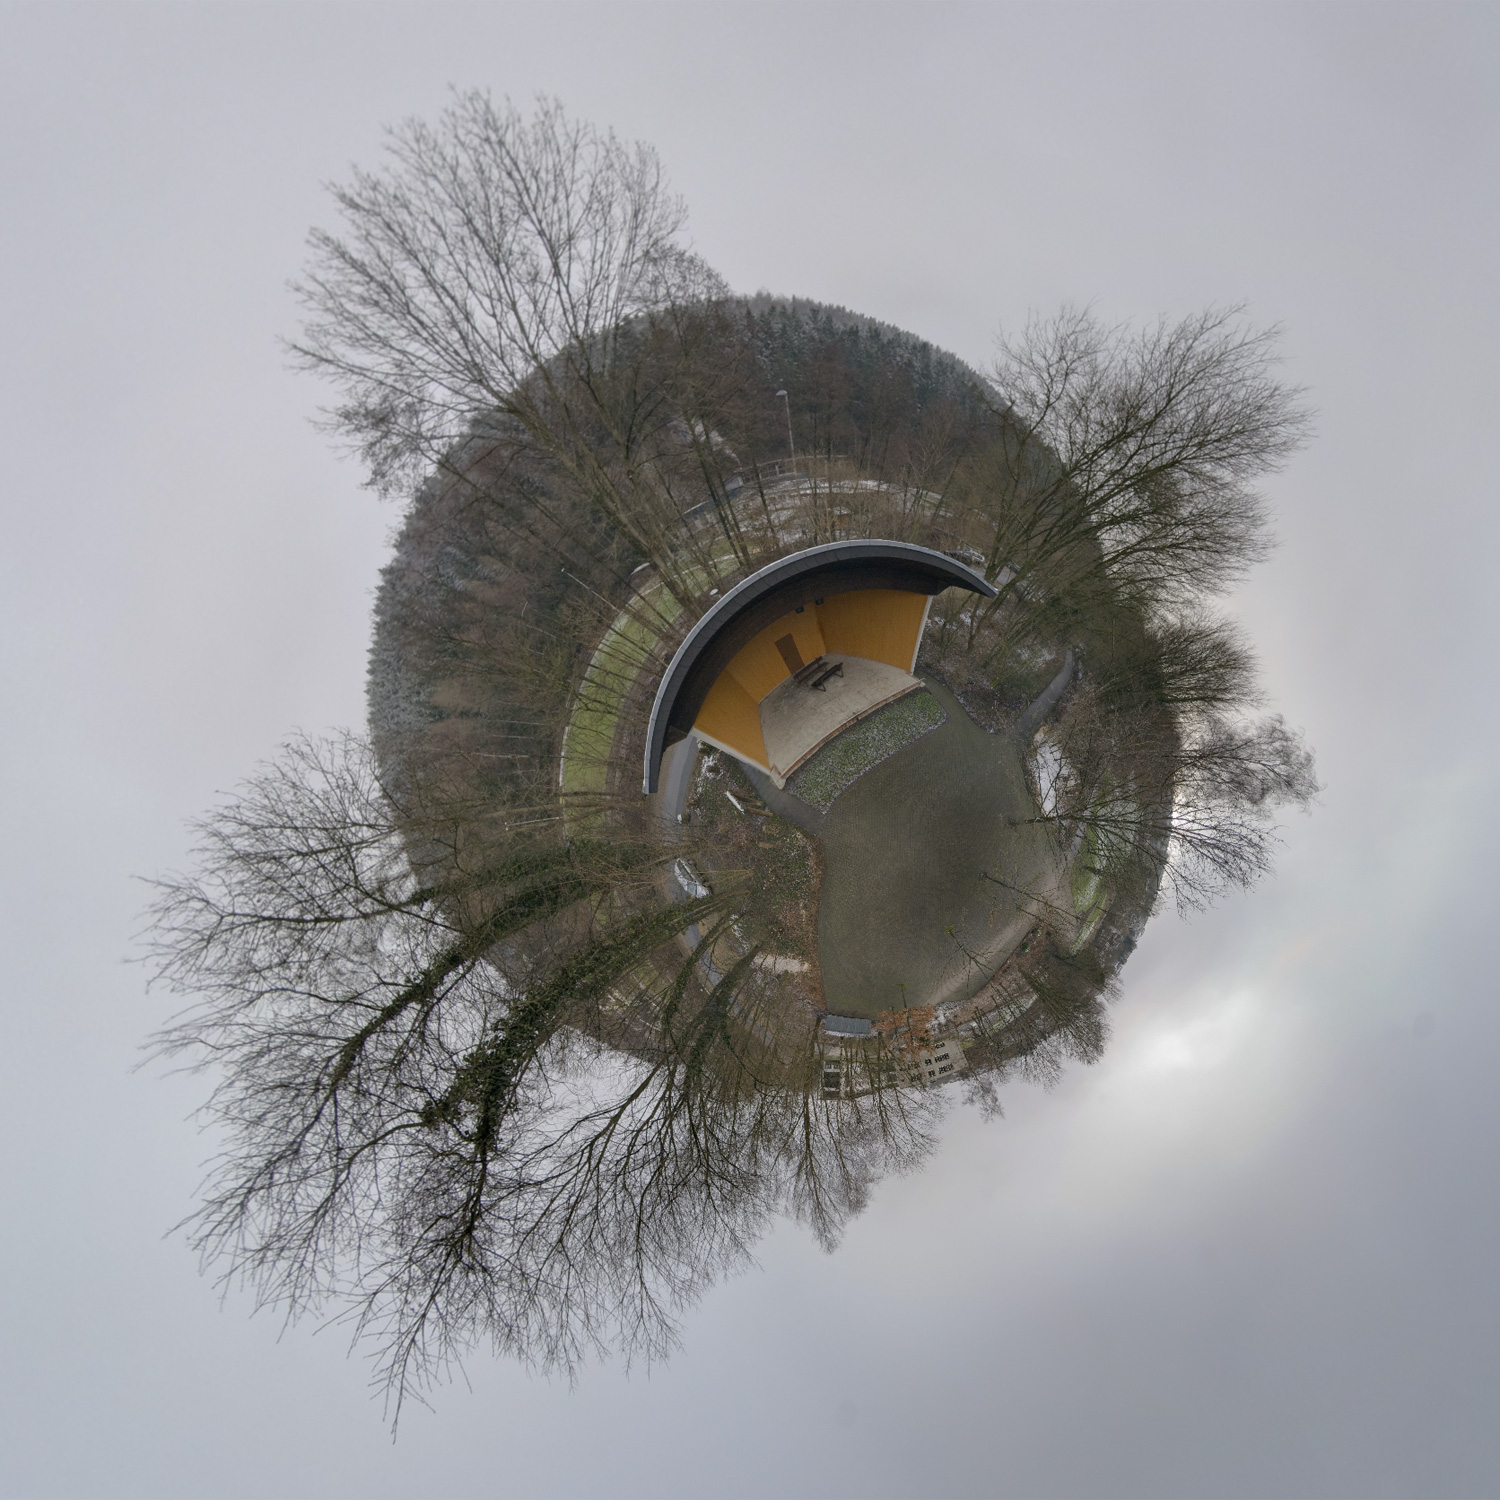 Panorama 062 - Little Planet